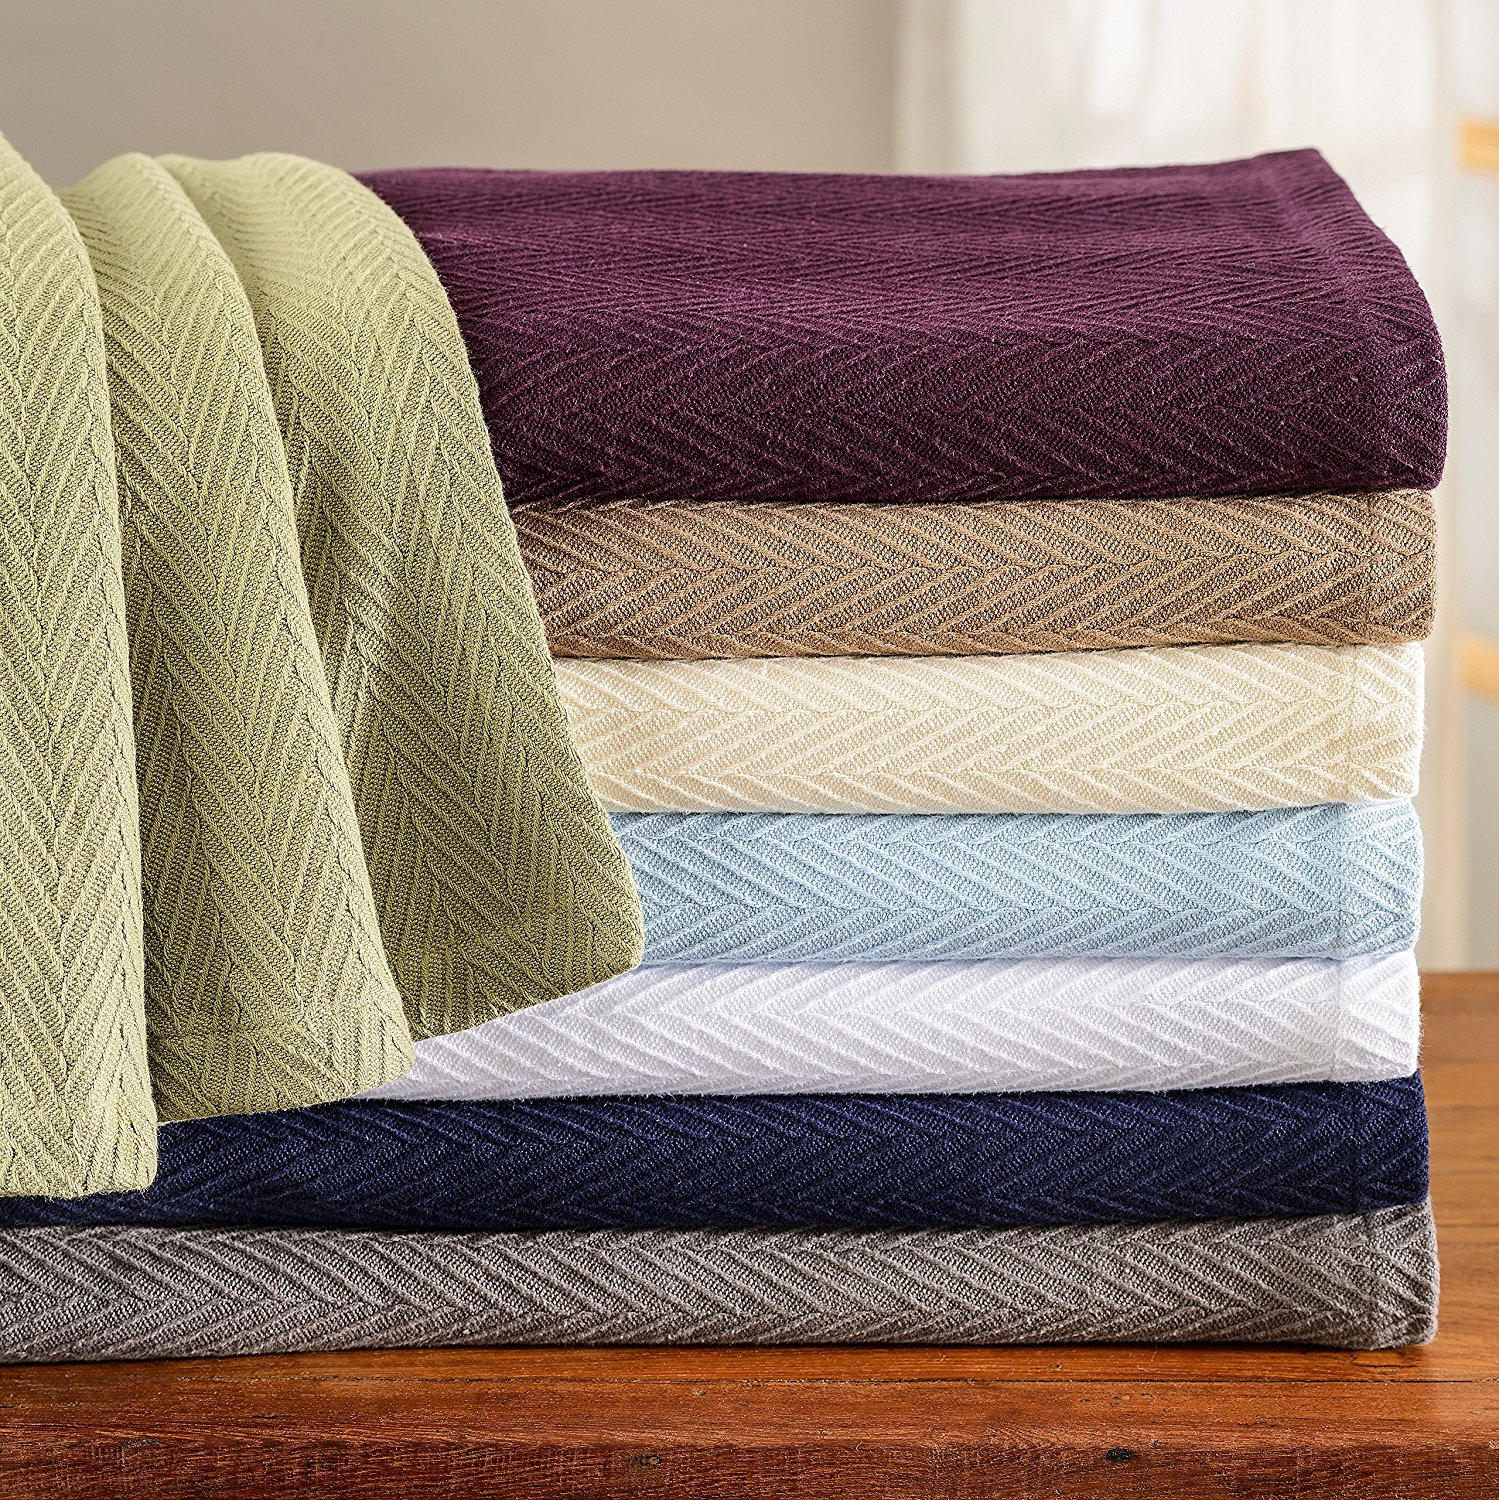 7 Summer Blankets And Sheets That Will Keep You Cool But Comfy